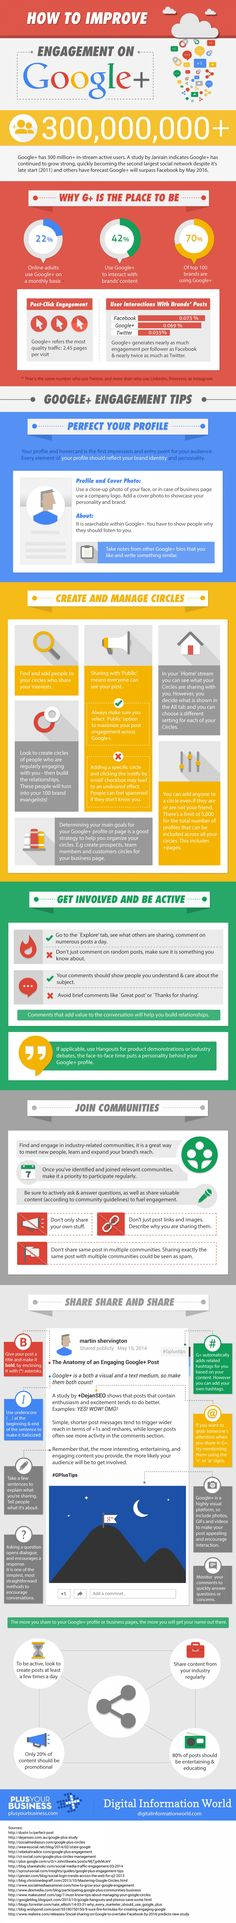 How To Improve #Engagement on #GooglePlus #infographic